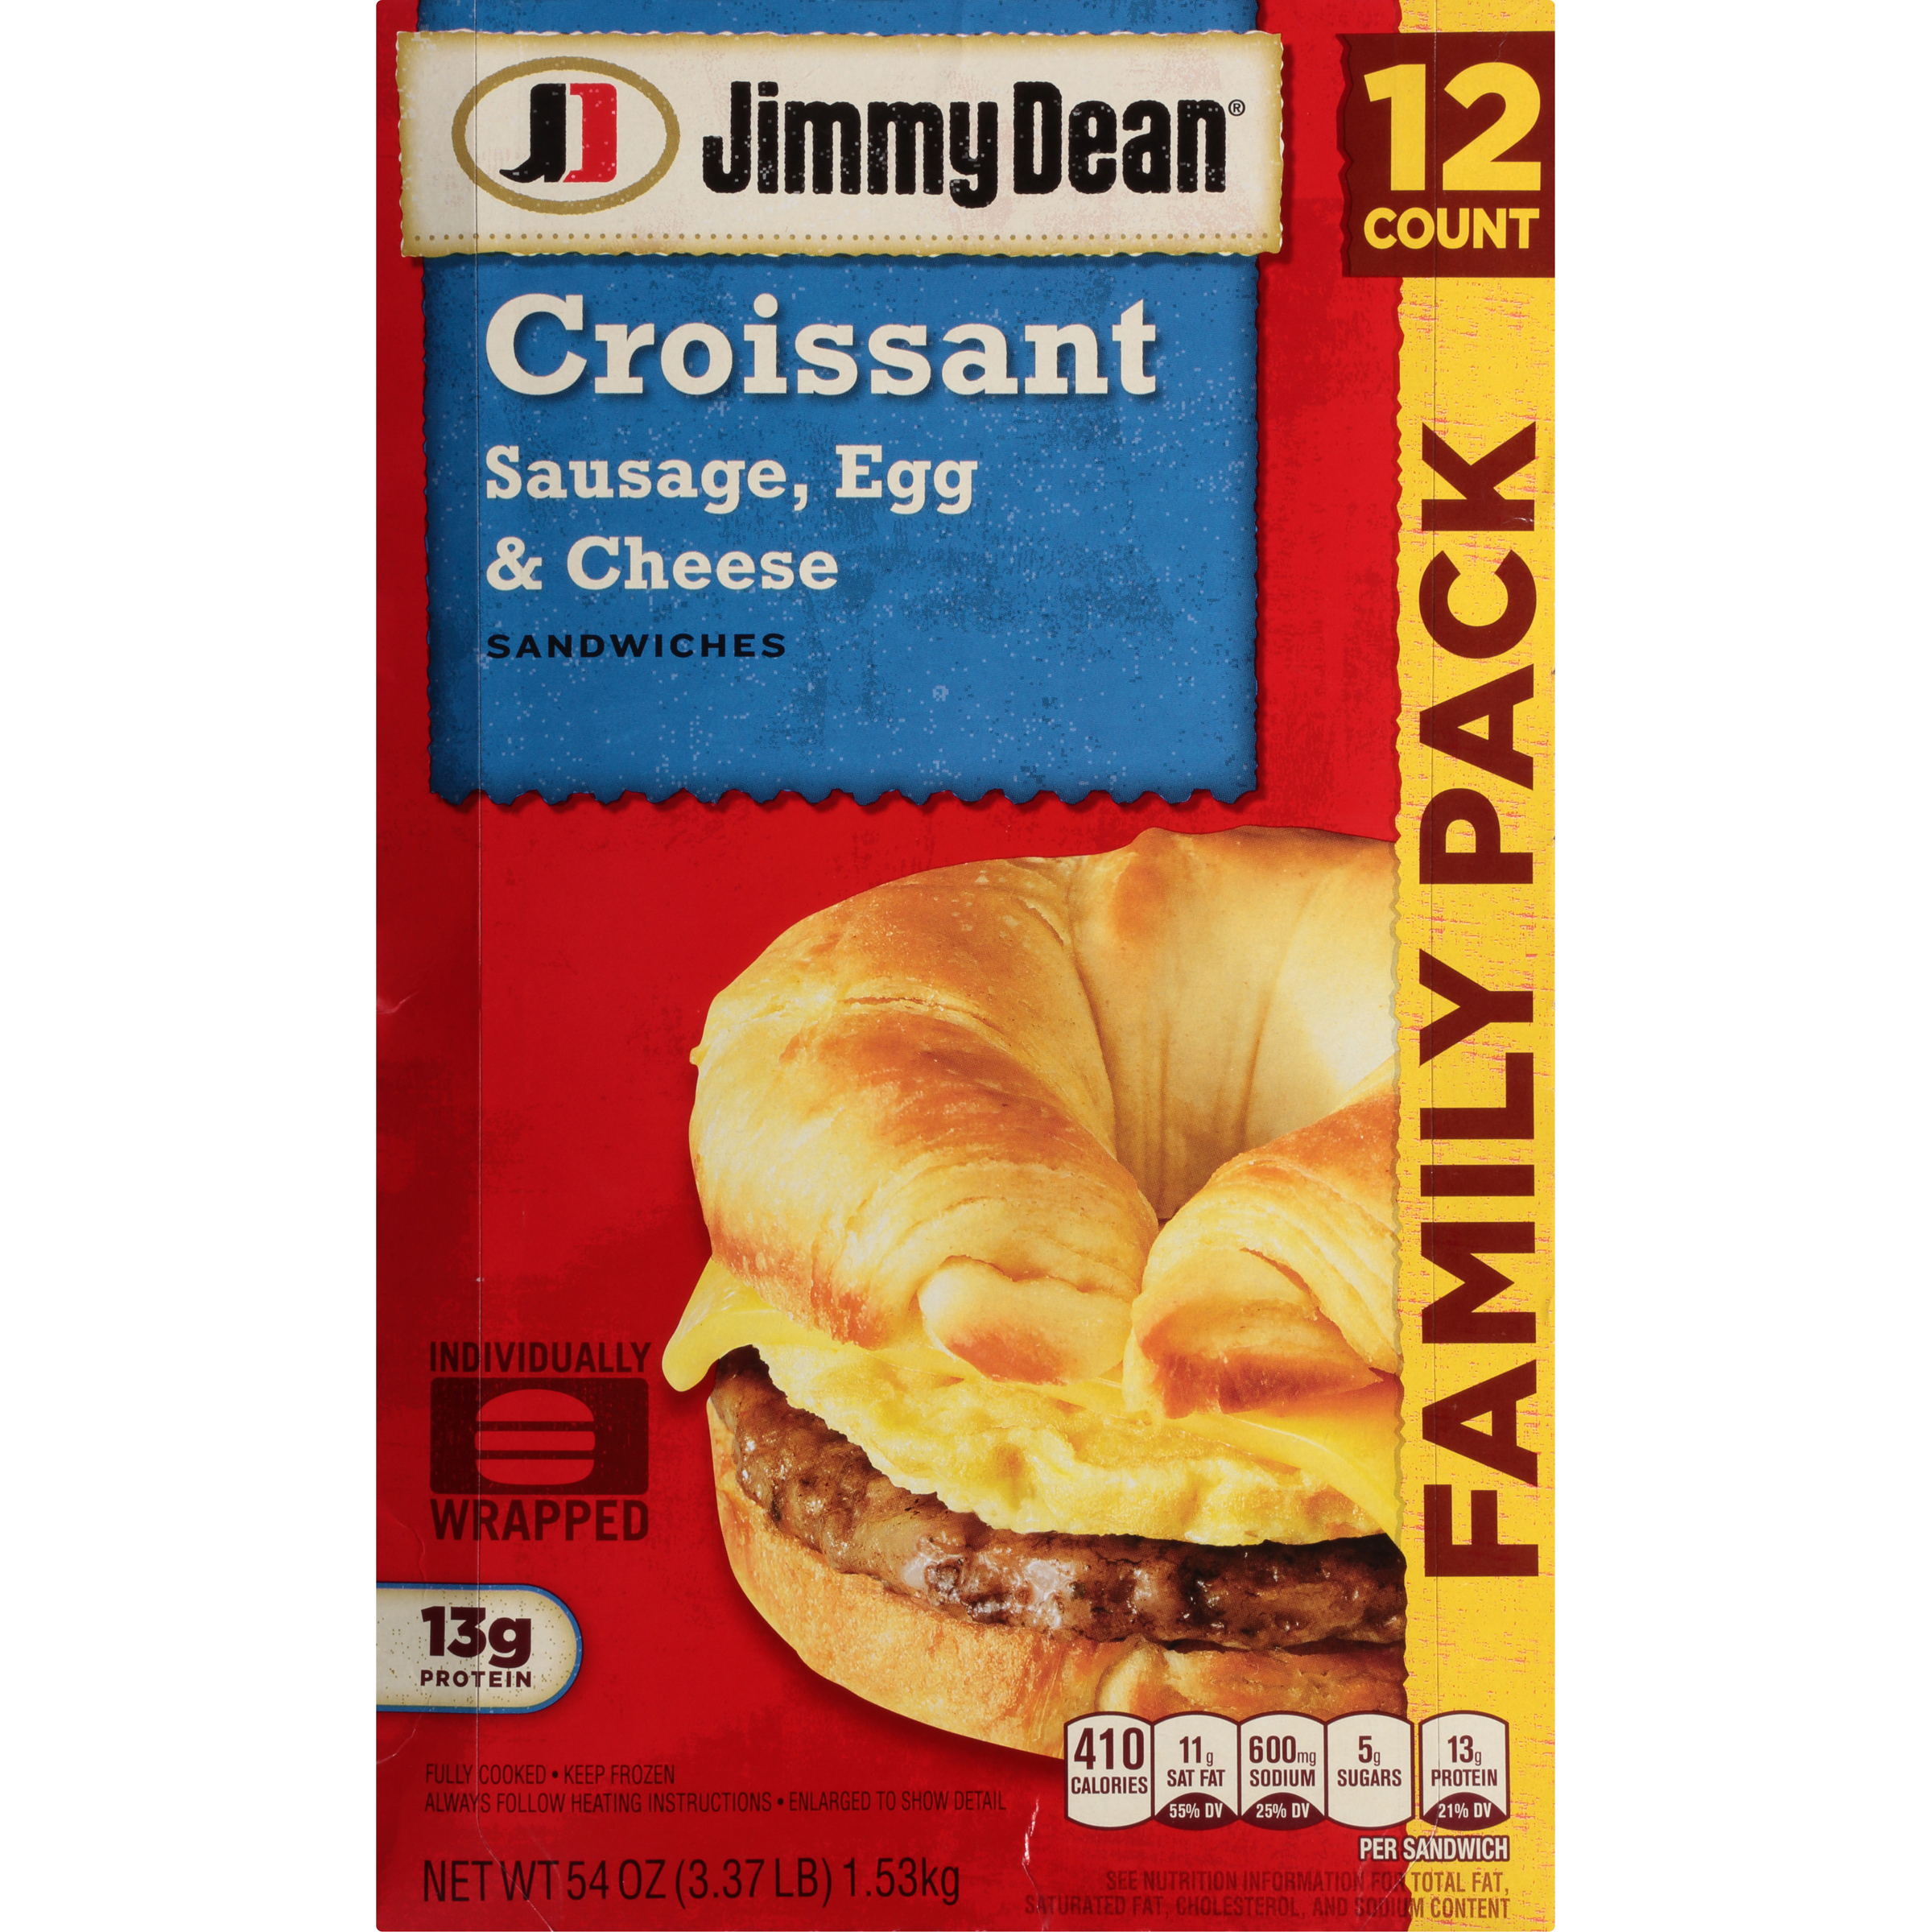 Jimmy Dean® Sausage, Egg & Cheese Croissant Sandwiches, 12 Count (Frozen)